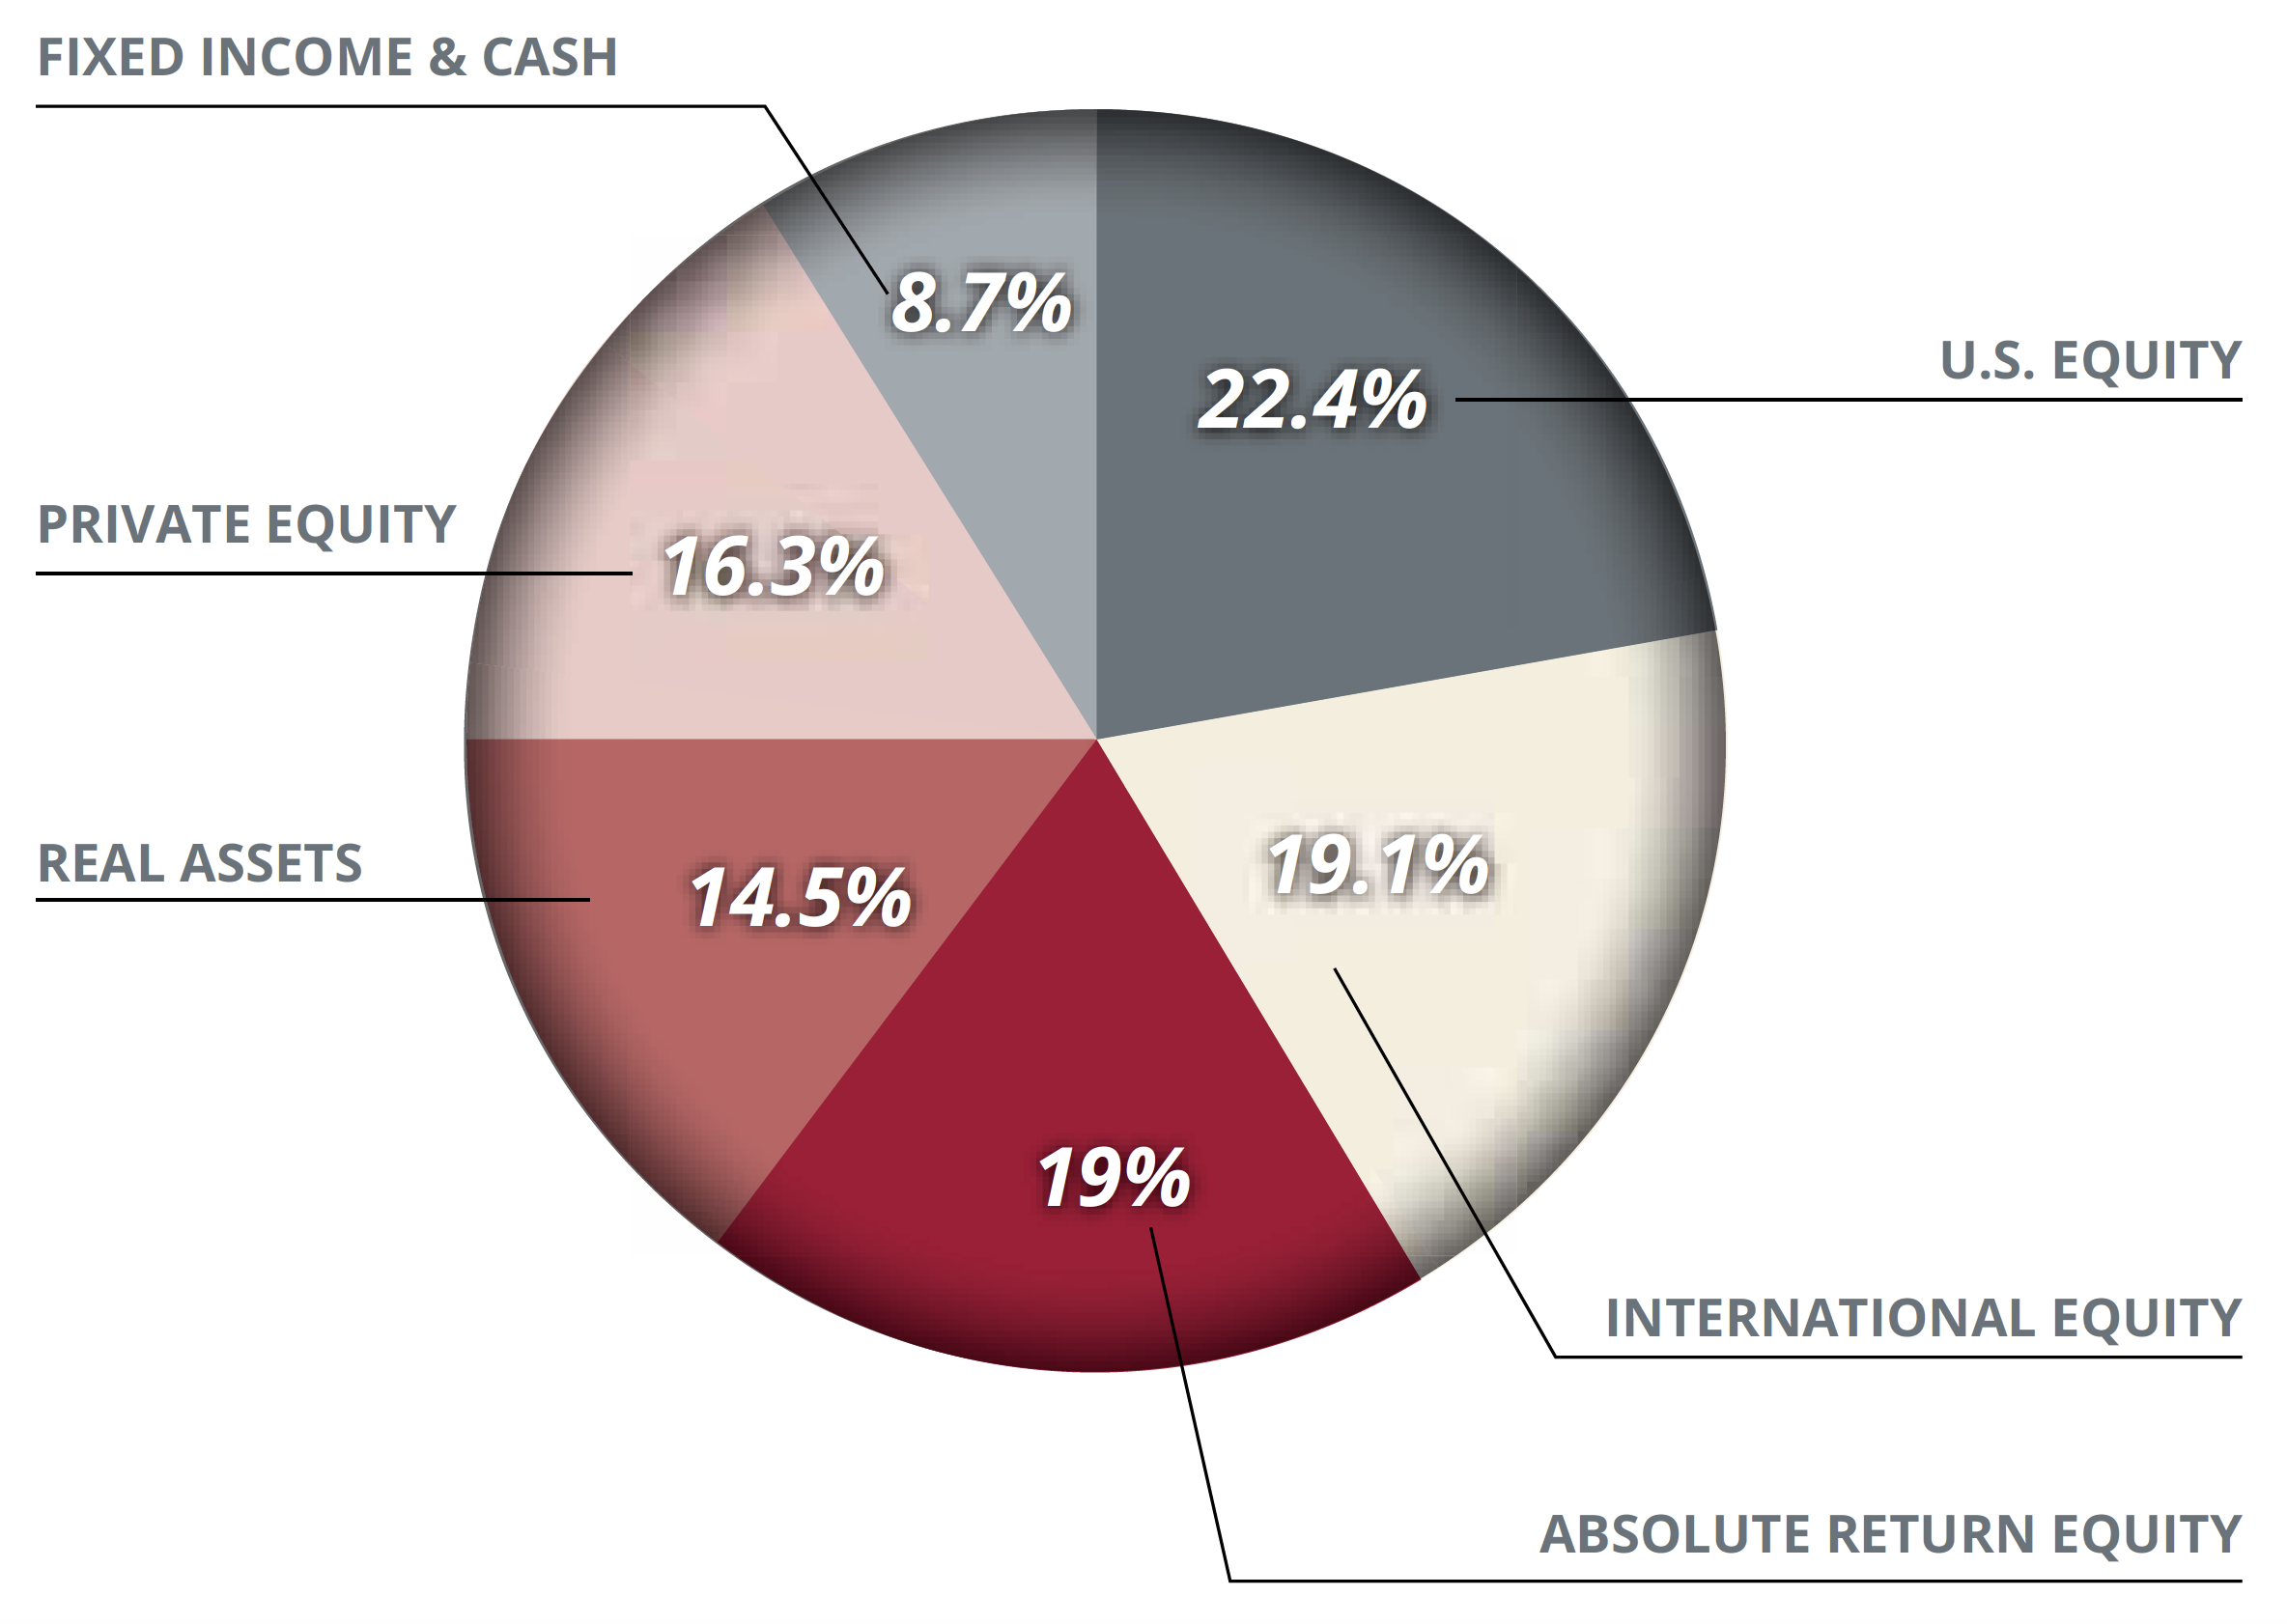 International Equity - 19.1%; US Equity - 22.4%; Absolute Return Equity - 9%; Real Assets - 14.5%; Private equity - 16.3%; Fixed Income & Cash - 8.7%